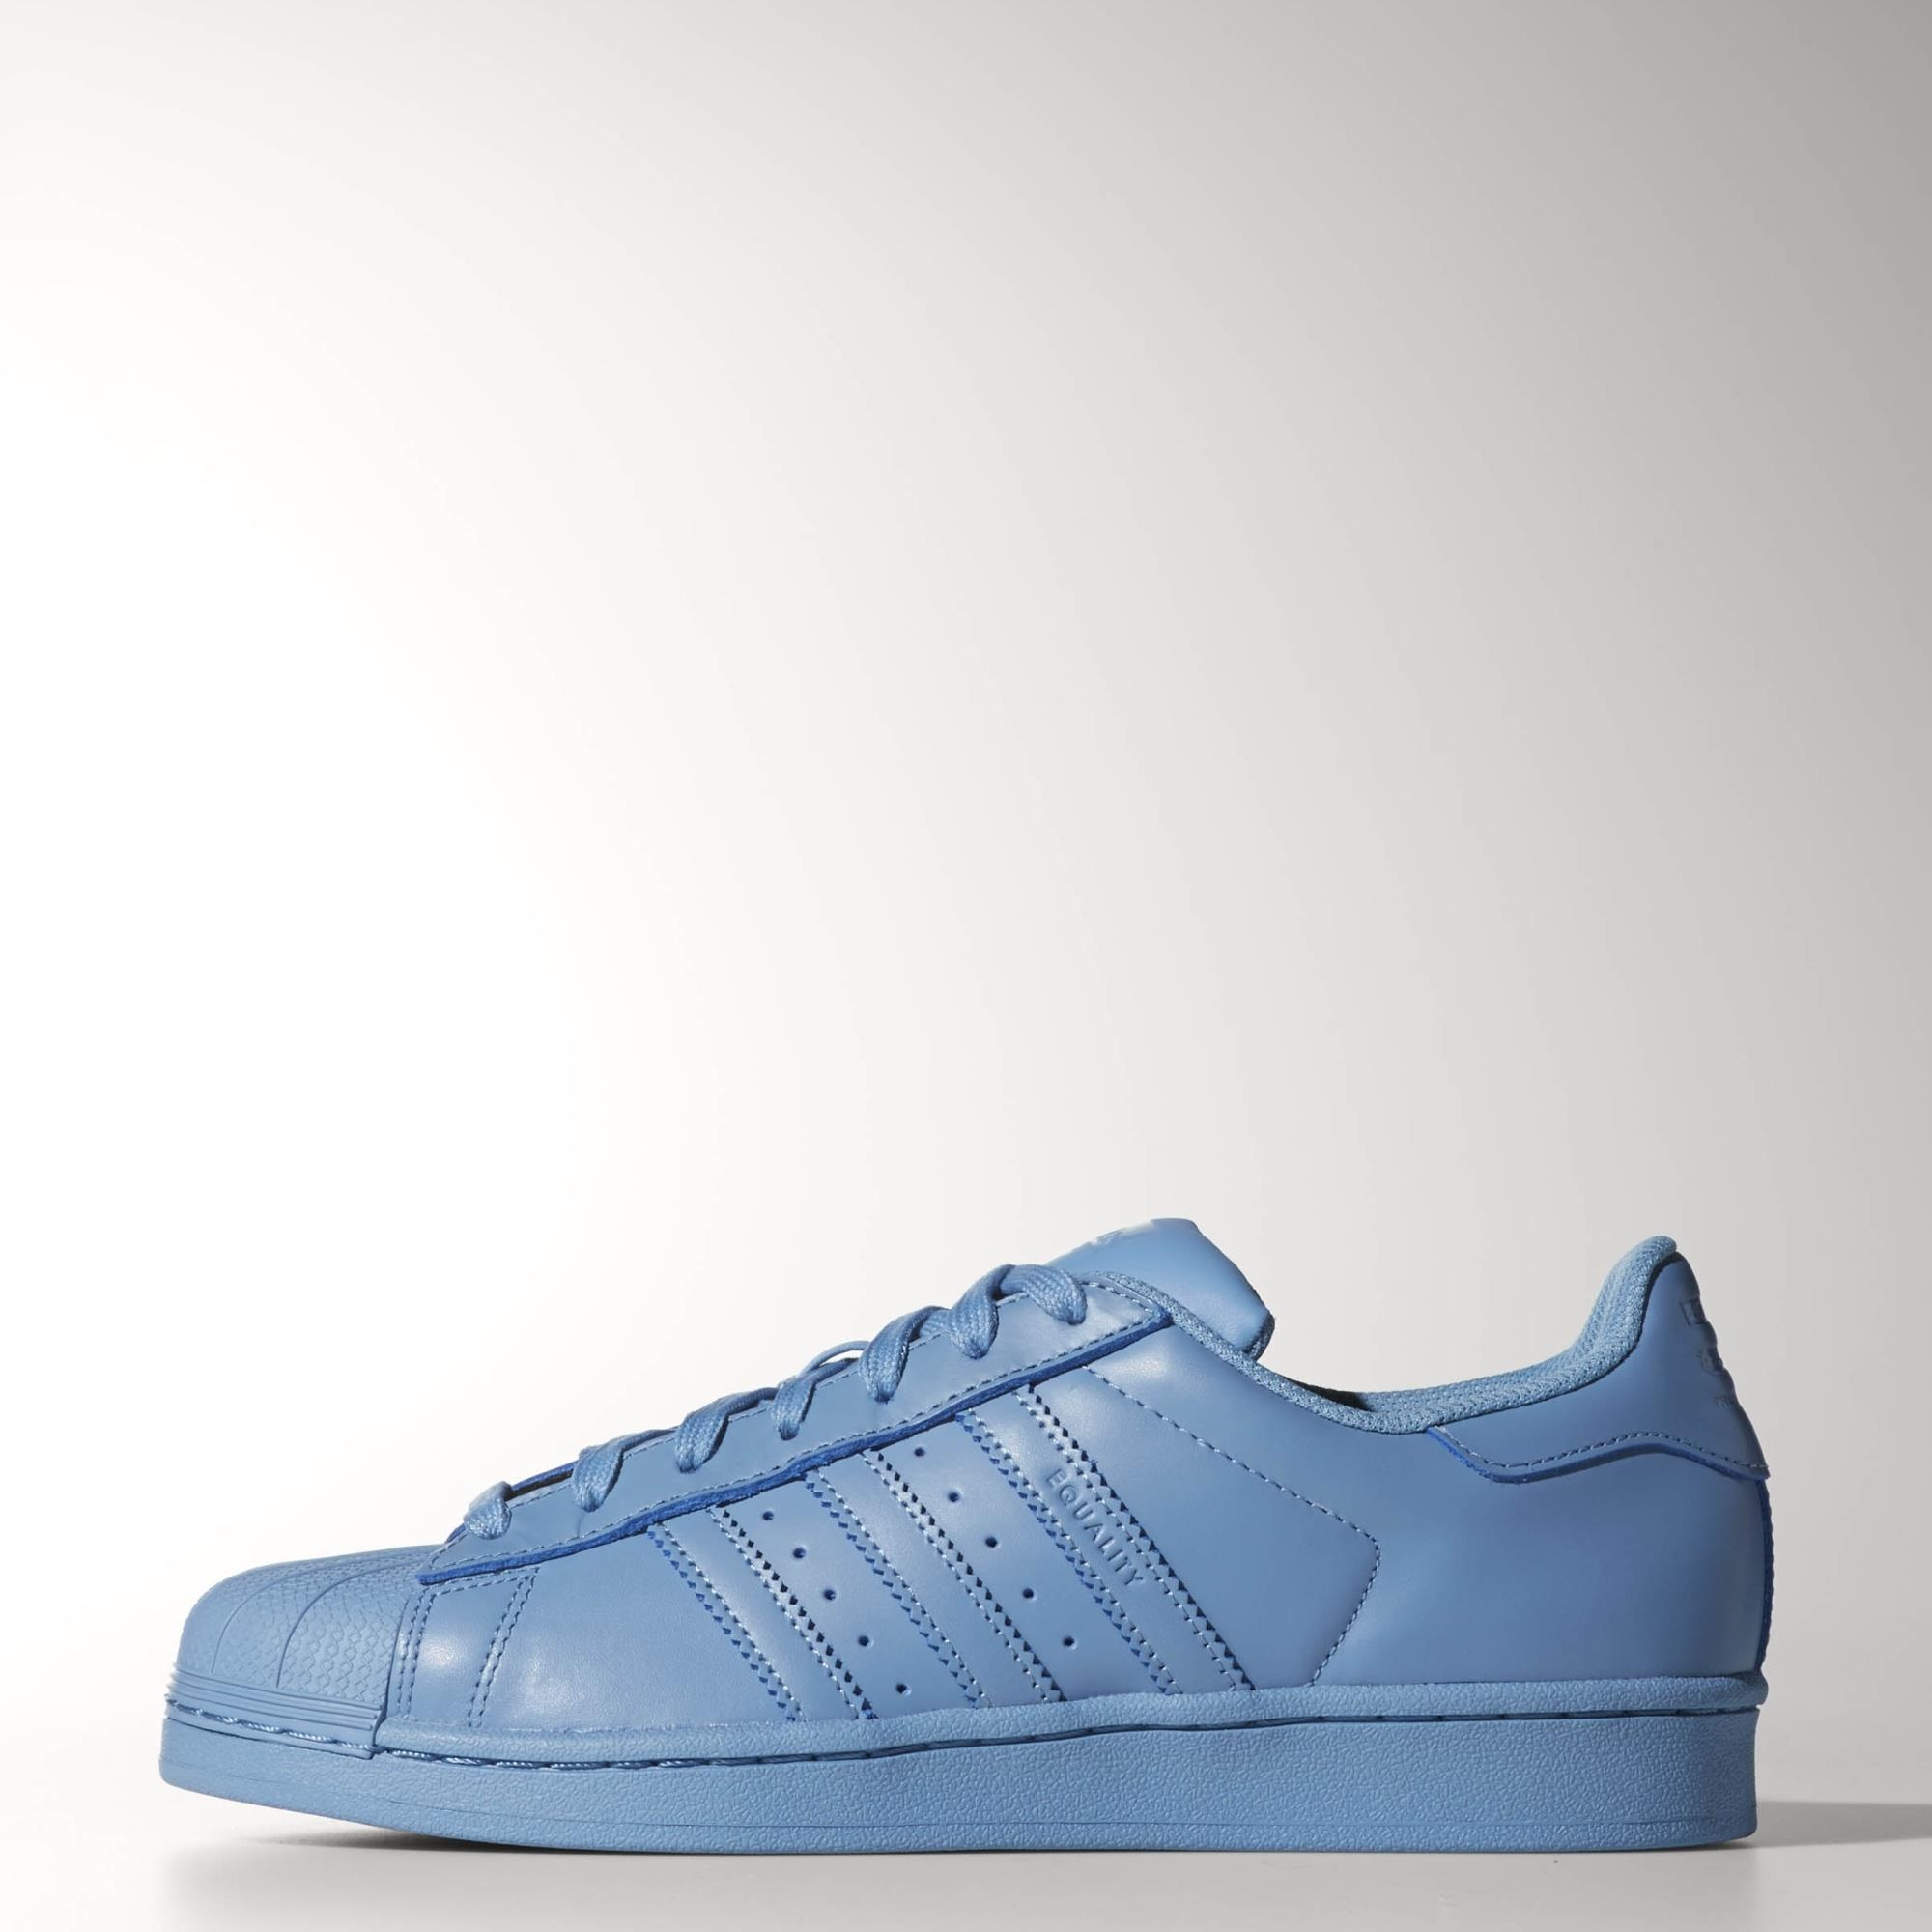 Pack Scarpe Italia Superstar Supercolor Adidas gnZPq